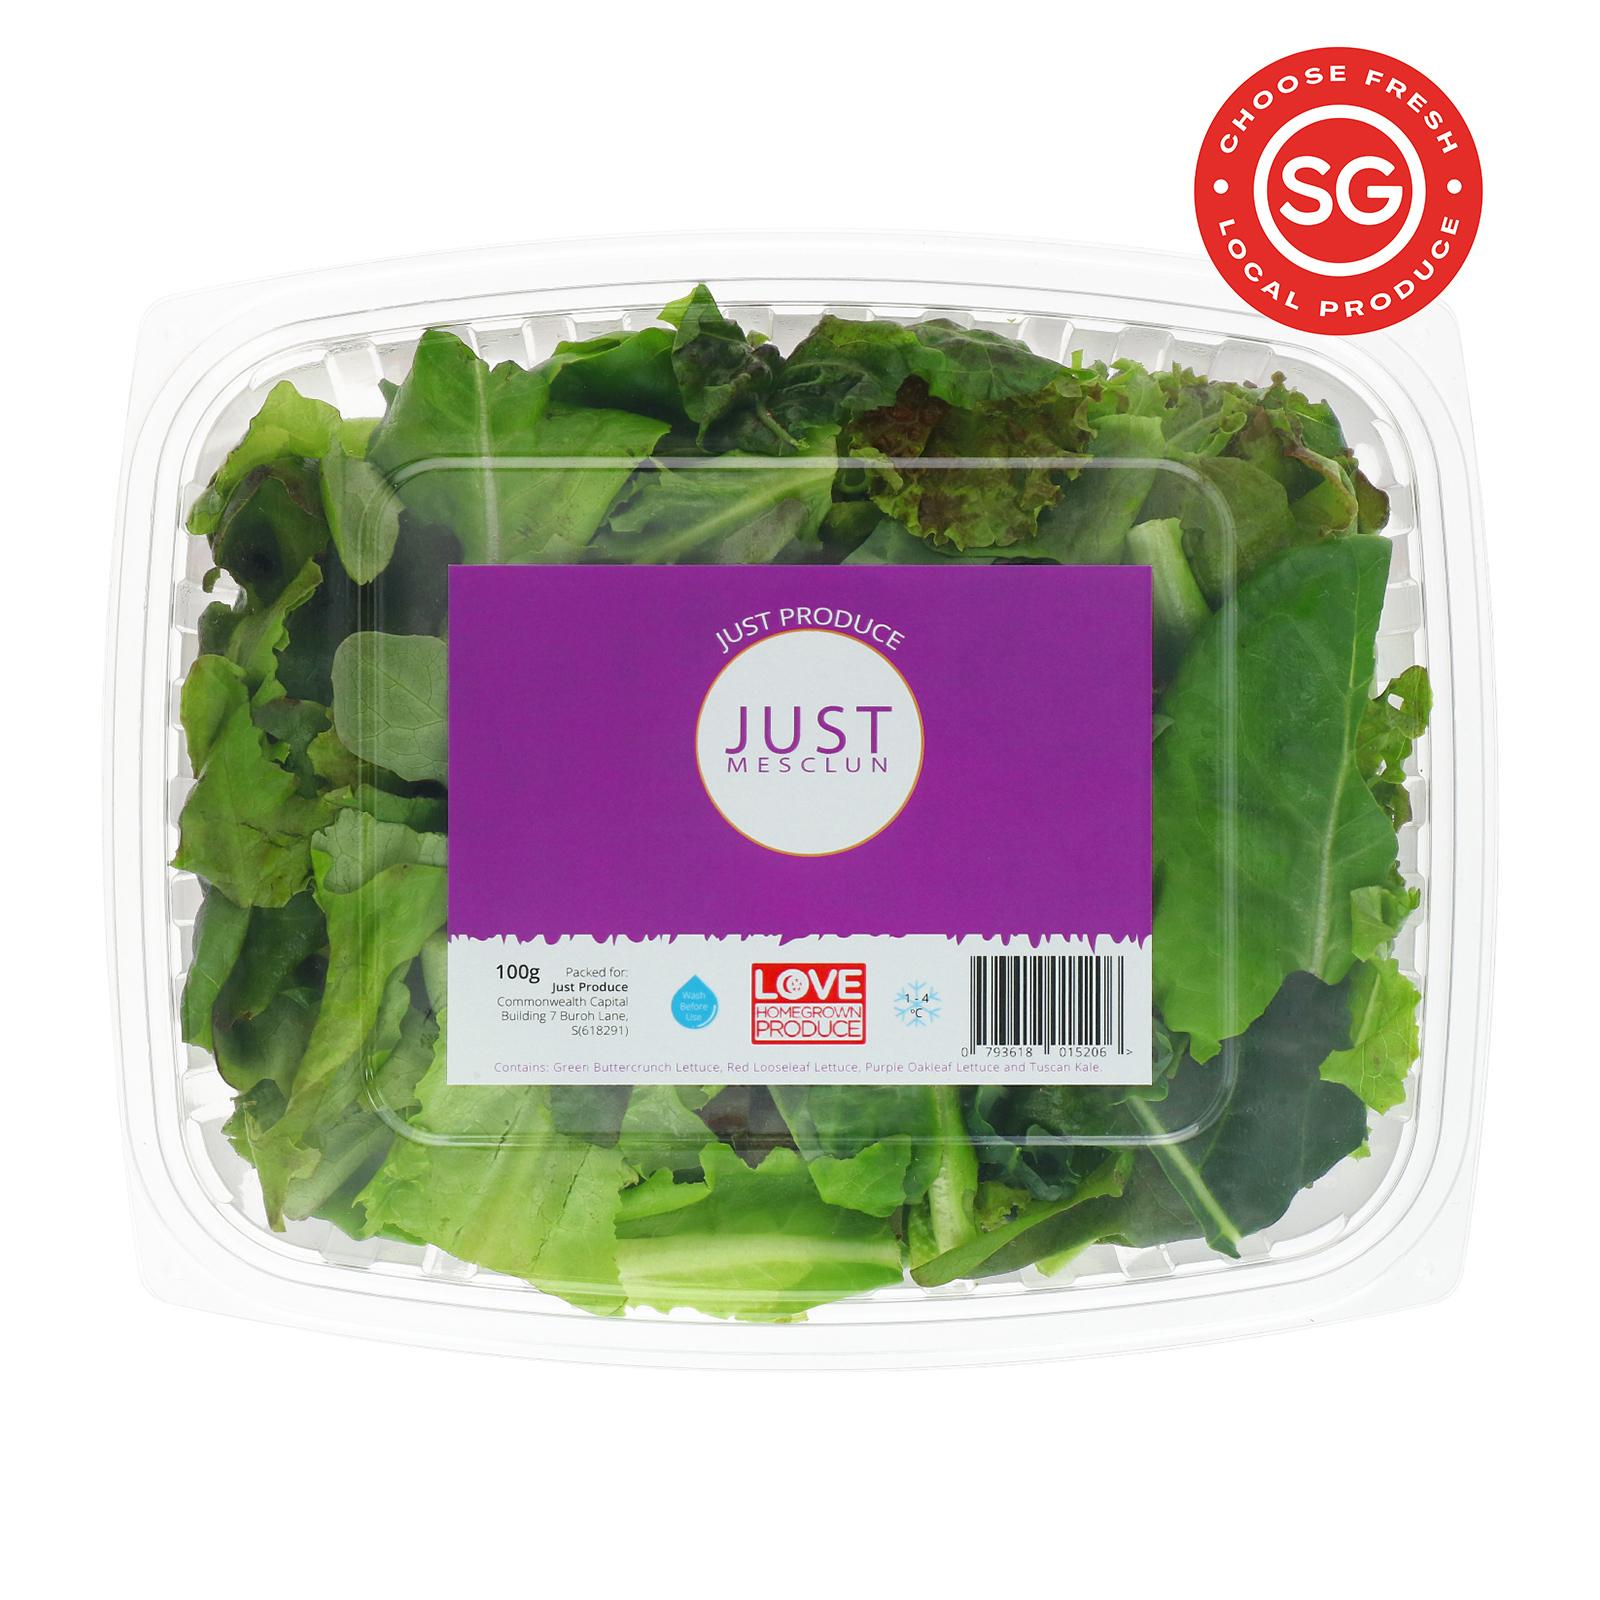 JUST PRODUCE Just Mesclun